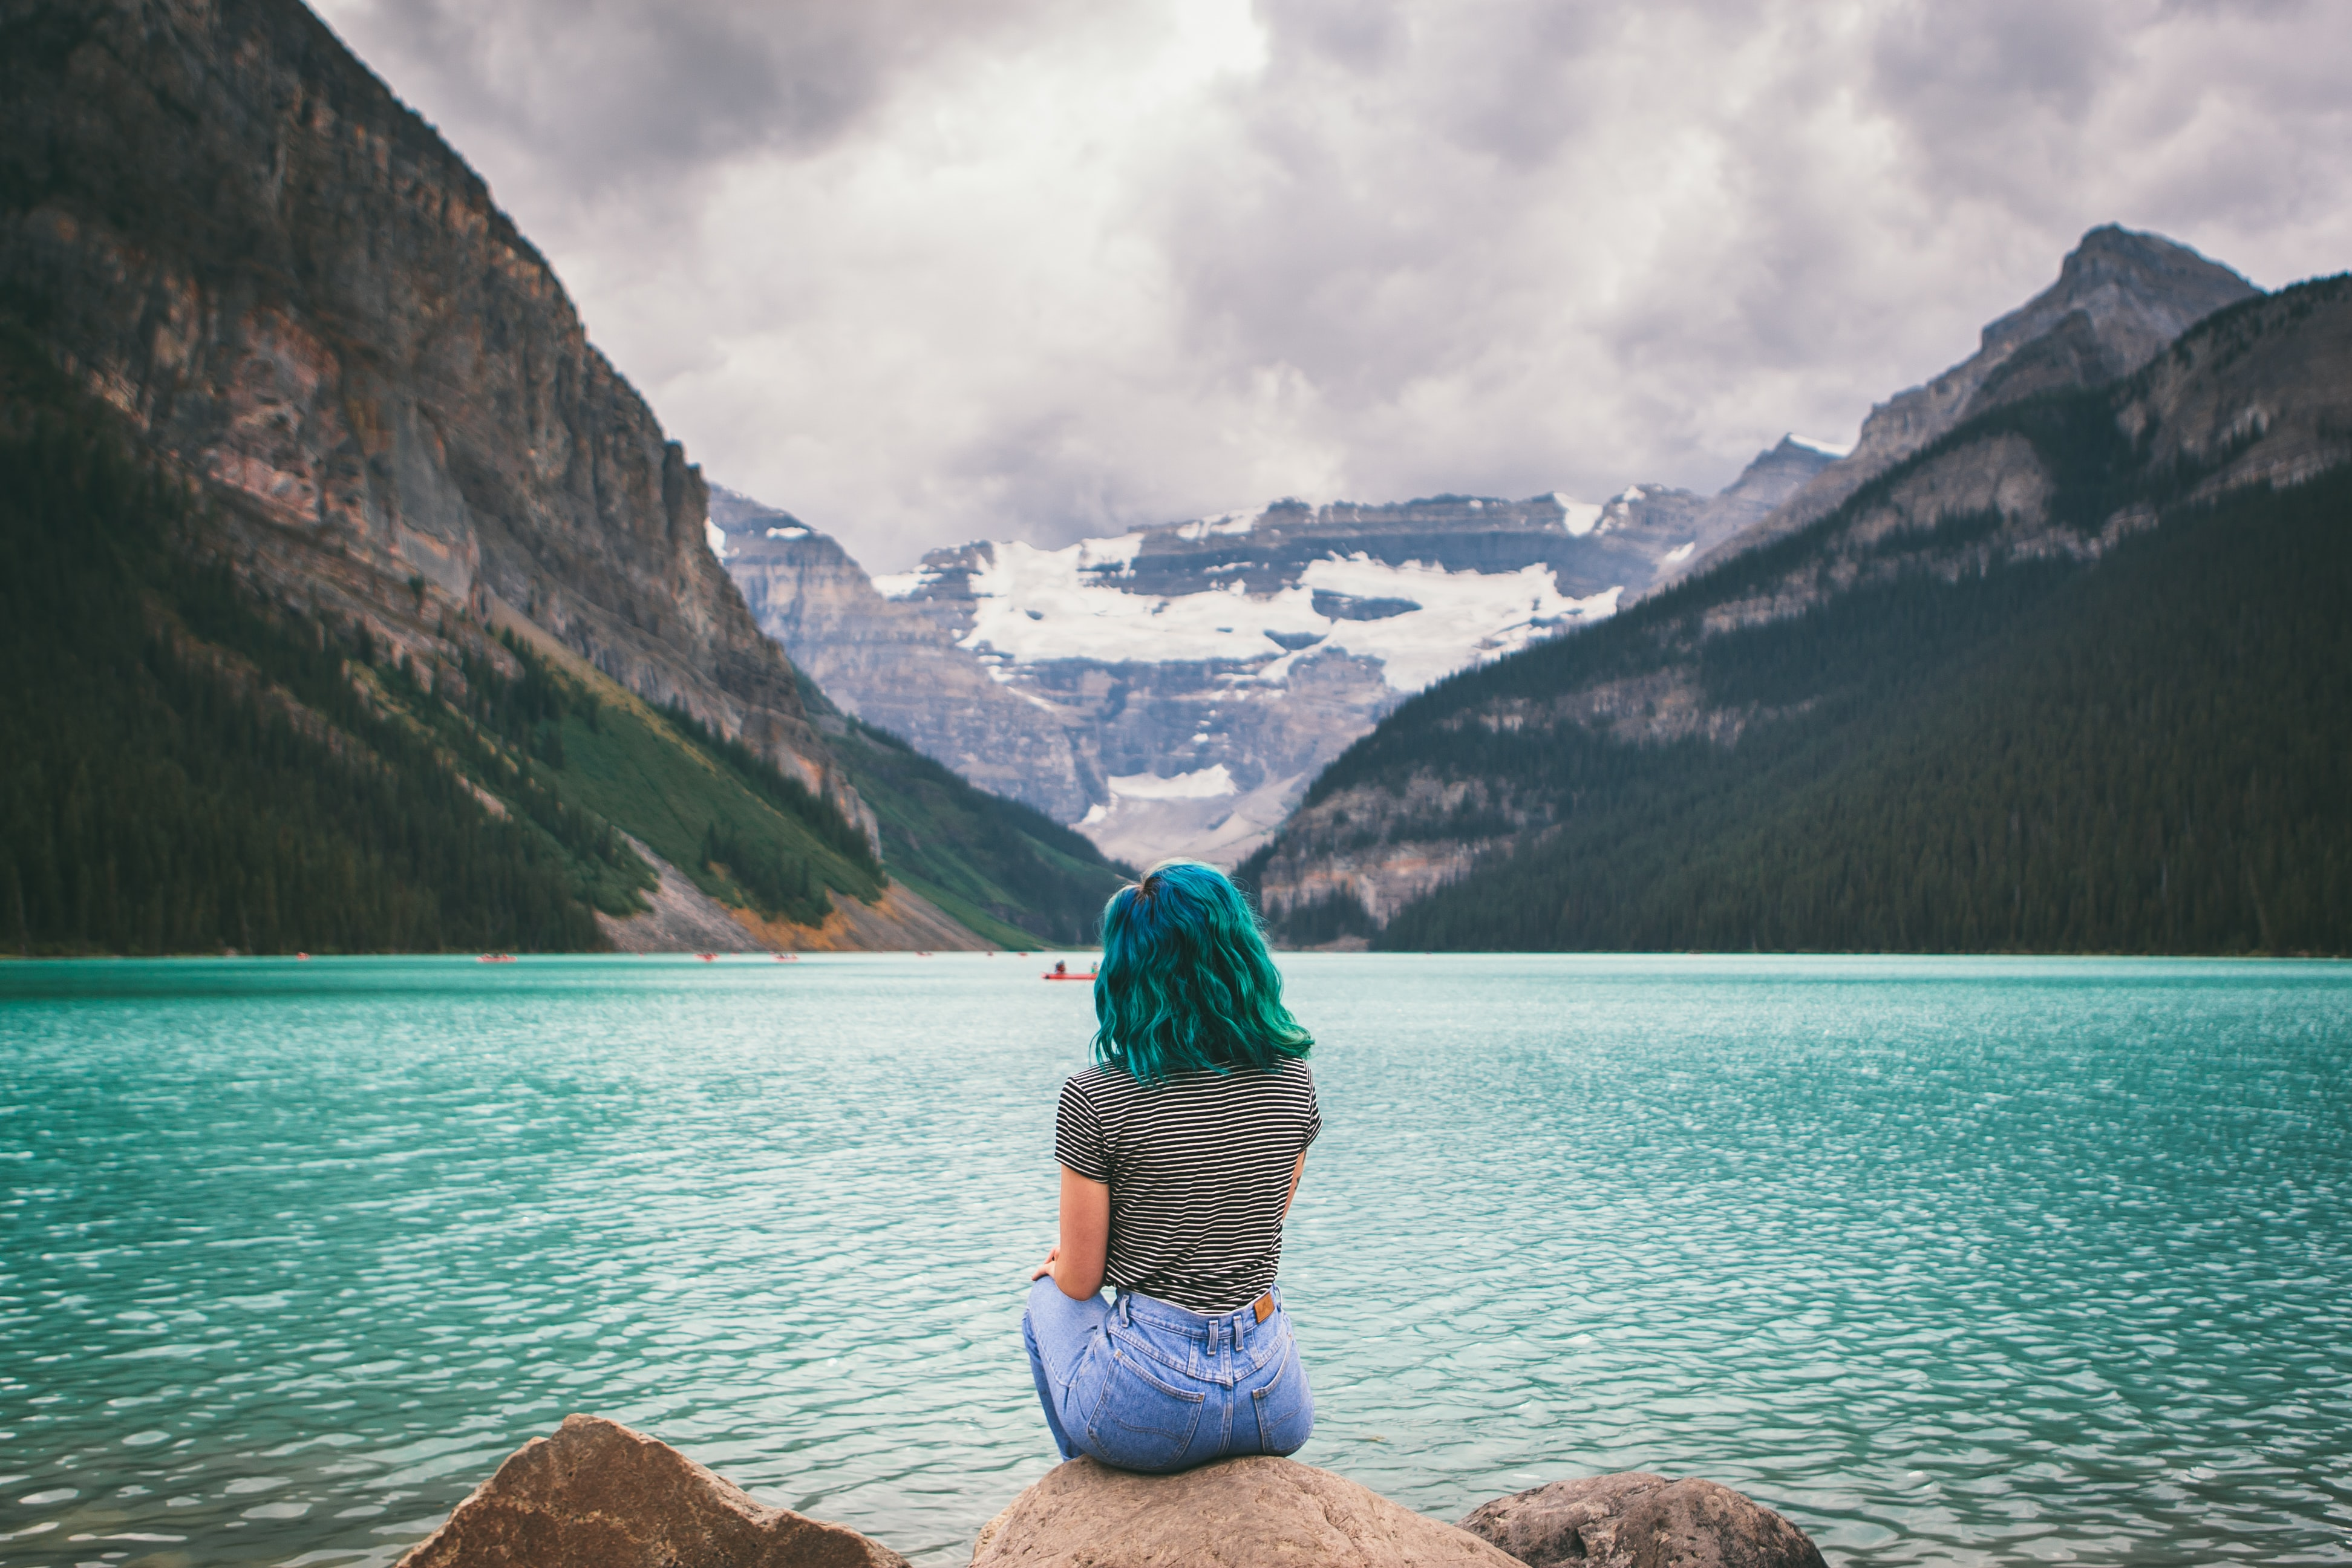 woman sitting on chair near body of water